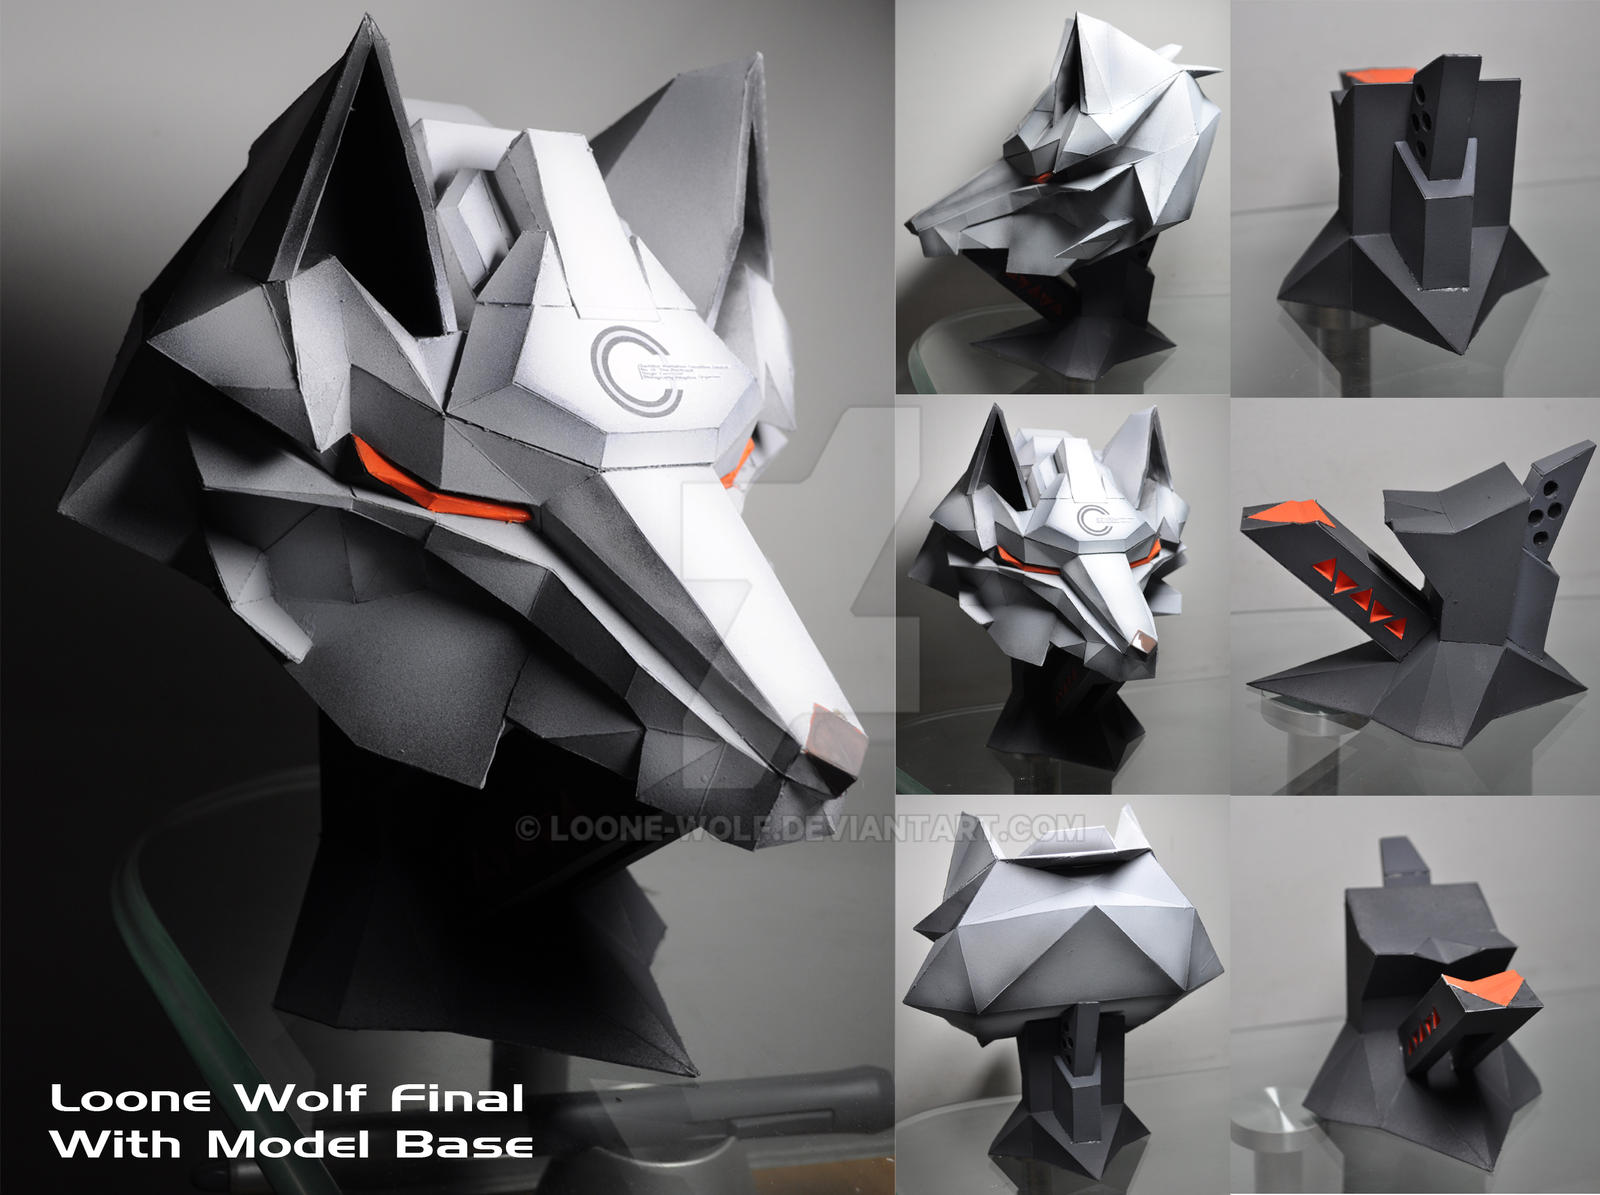 Loone-Wolf Final v1.0 by Loone-Wolf